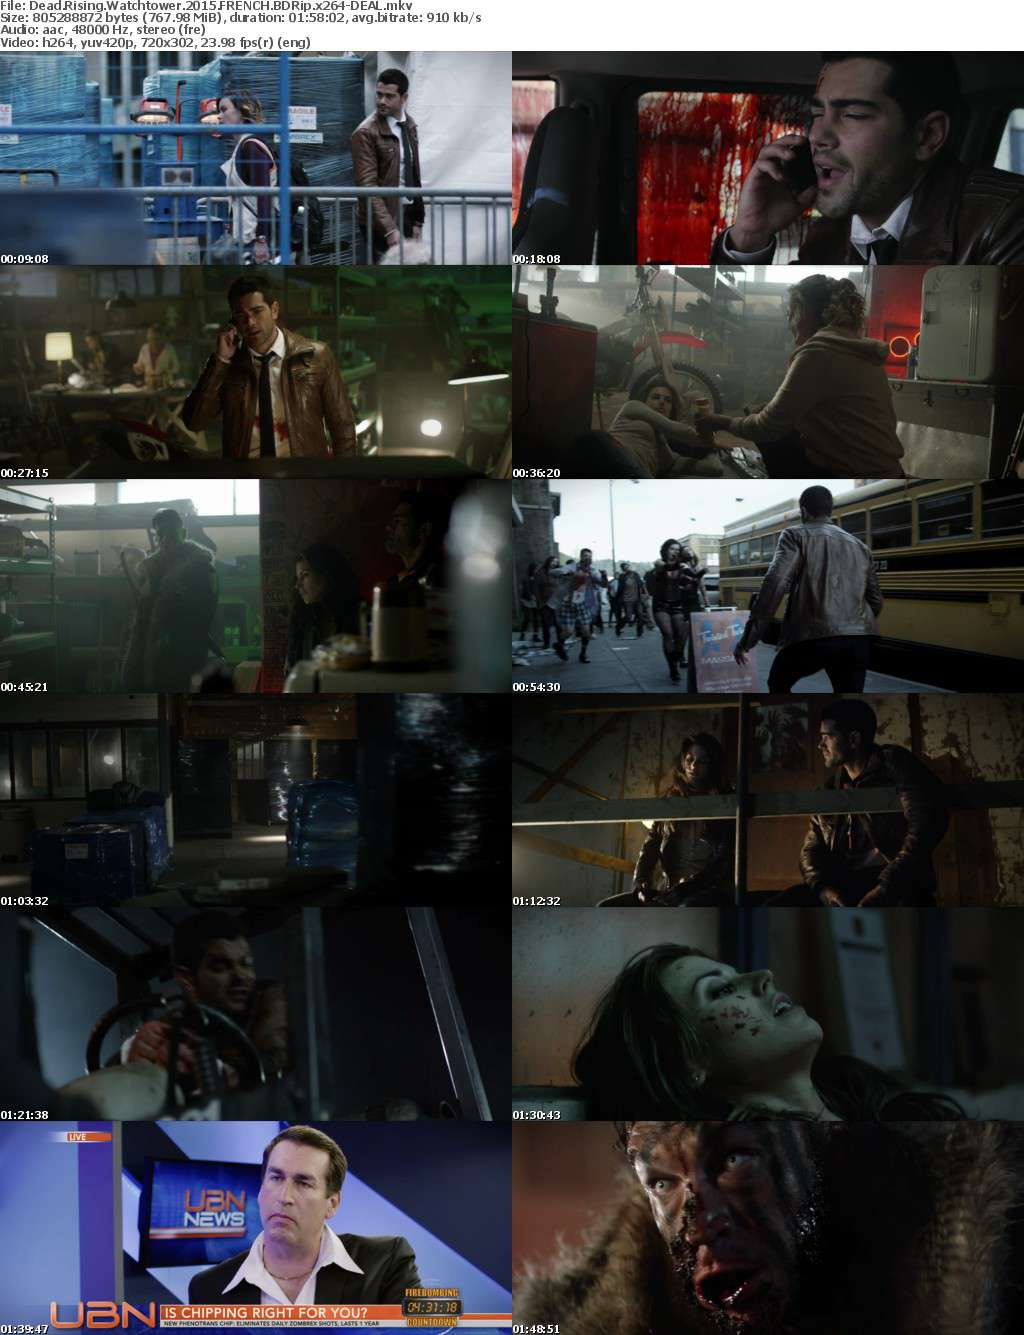 Dead Rising Watchtower 2015 FRENCH BDRip x264-DEAL